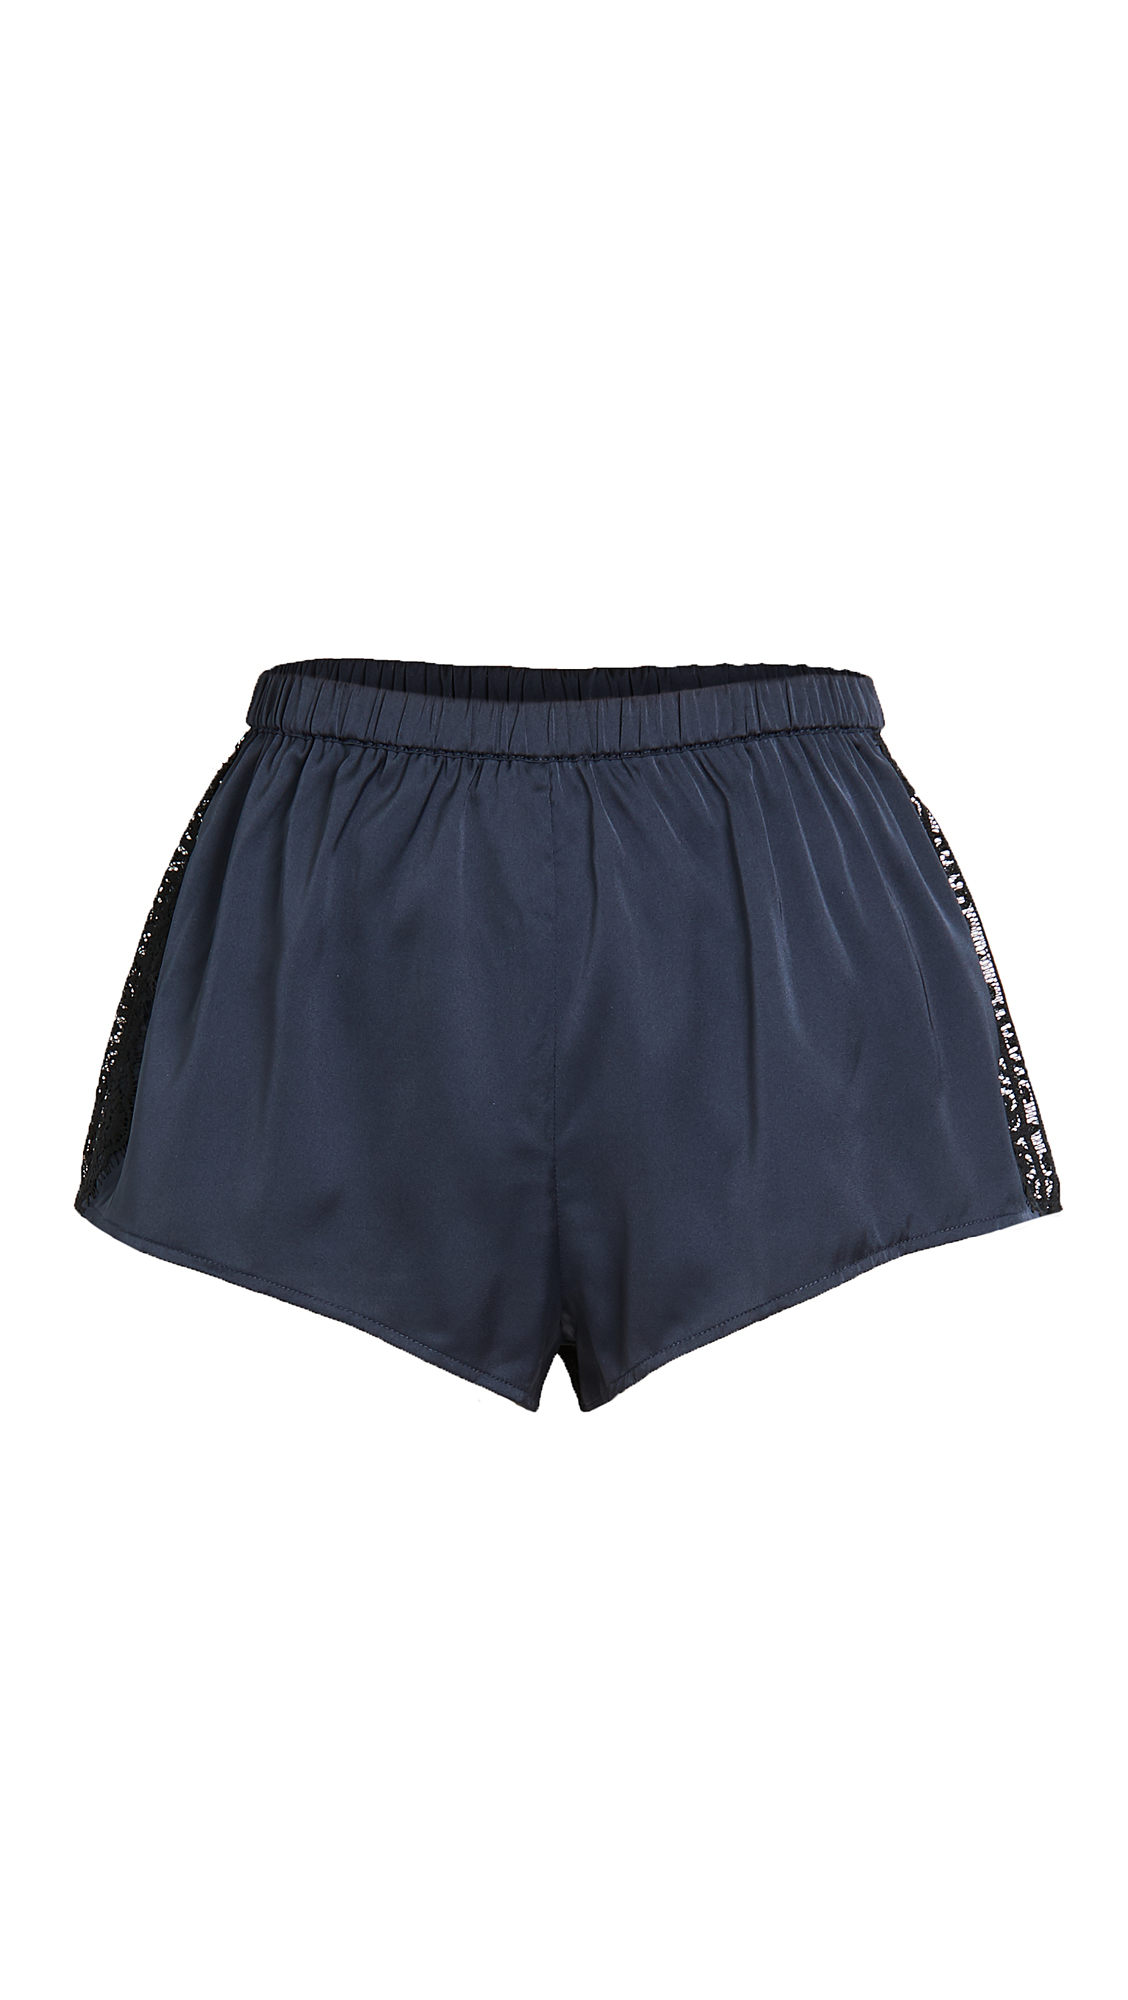 Simone Perele Satin Secrets Night Shorts